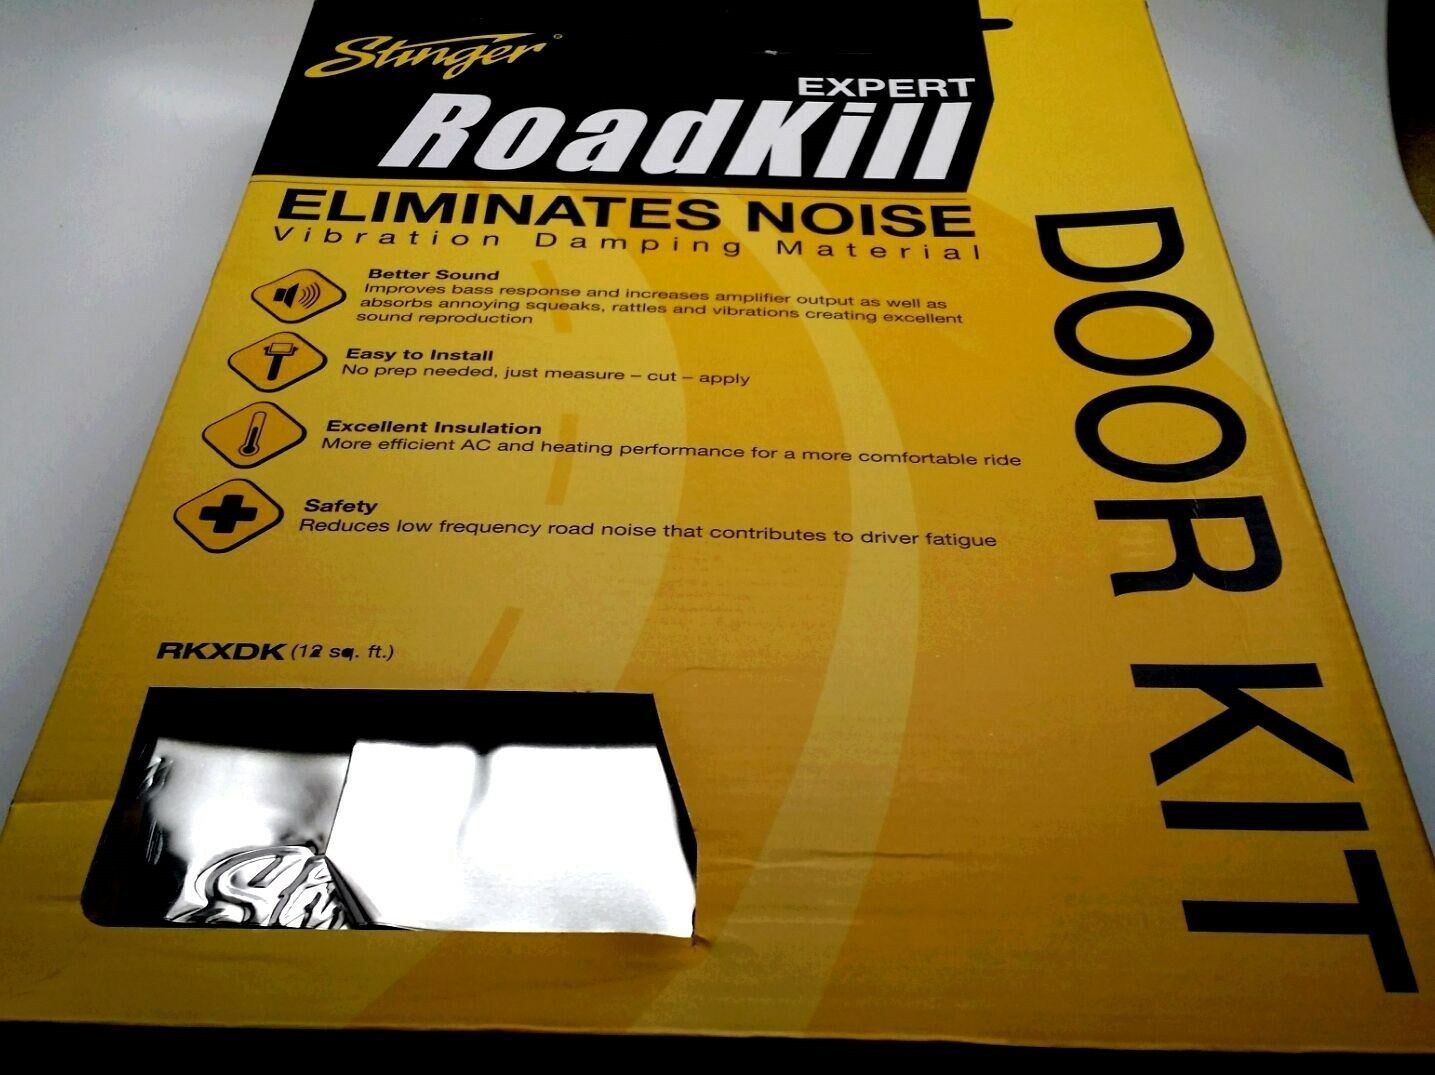 Stinger RKXDK Roadkill Expert Series Sound Damping Material Door Kit 12-Foot